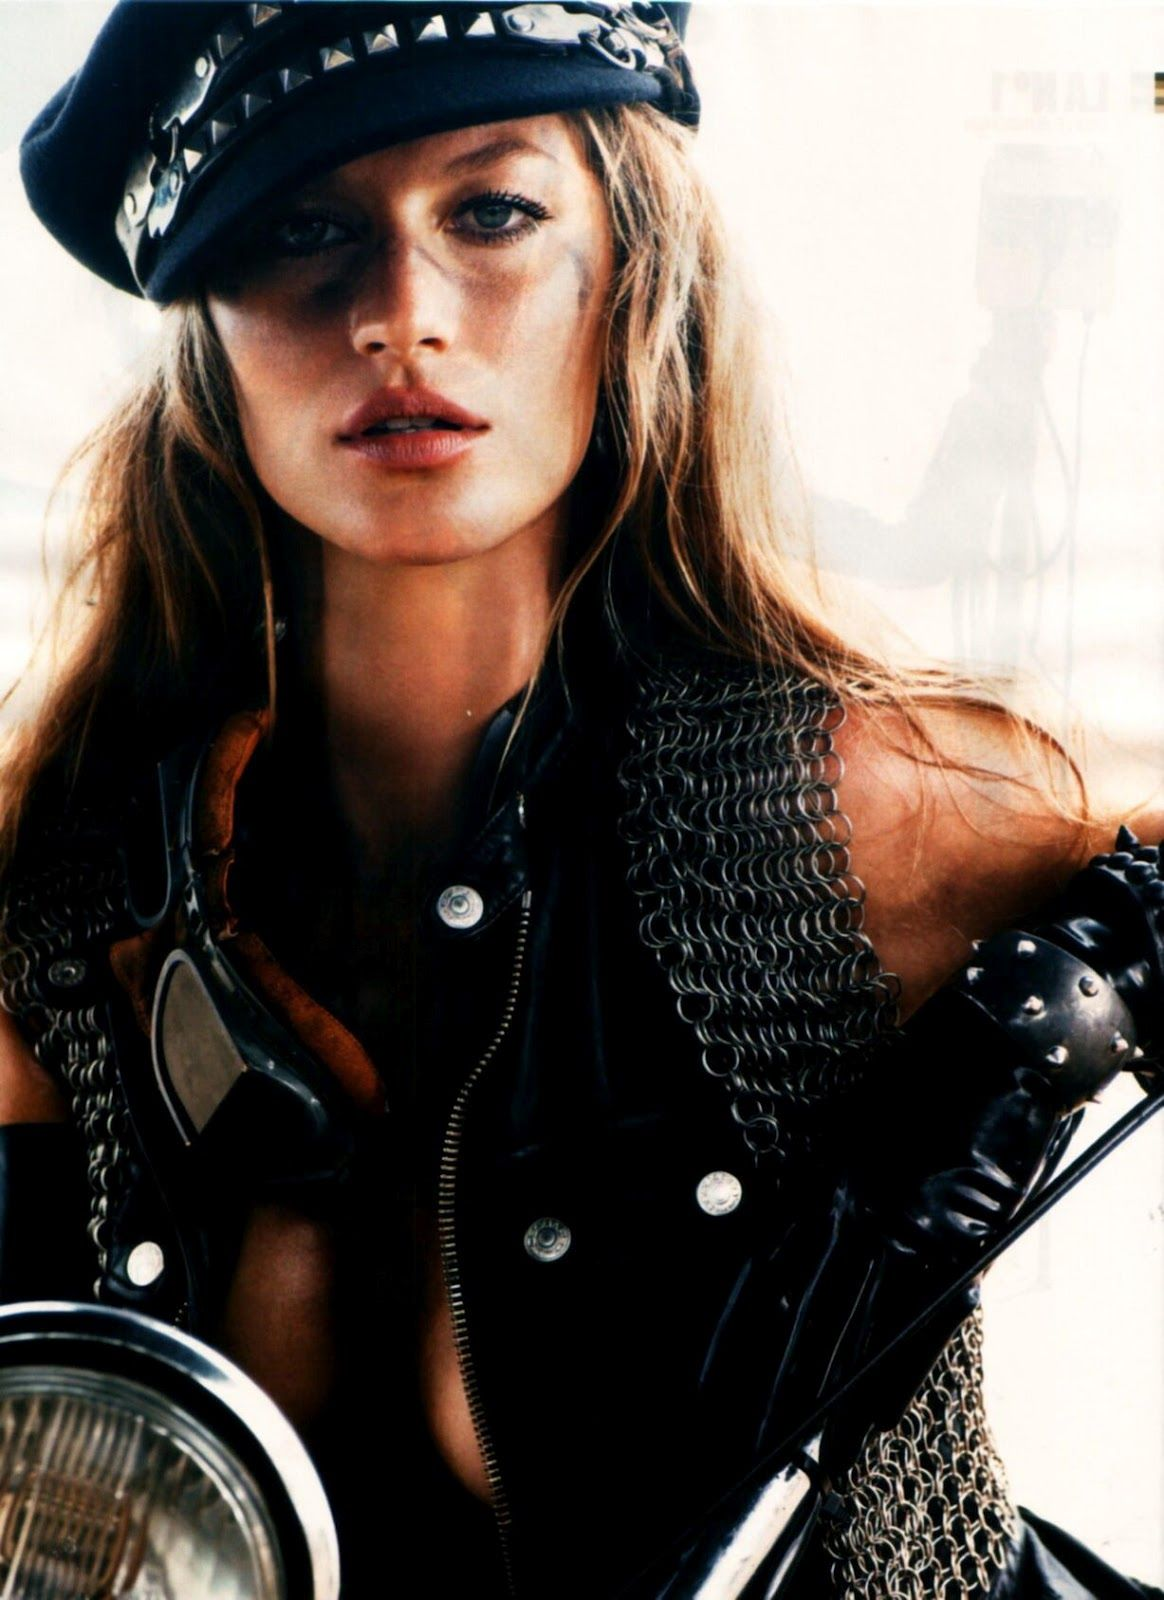 Gisele Bundchen Sexy | ... : Gisele Bundchen DT Spain- Octubre 2010 Celebrity hot Photoshoots